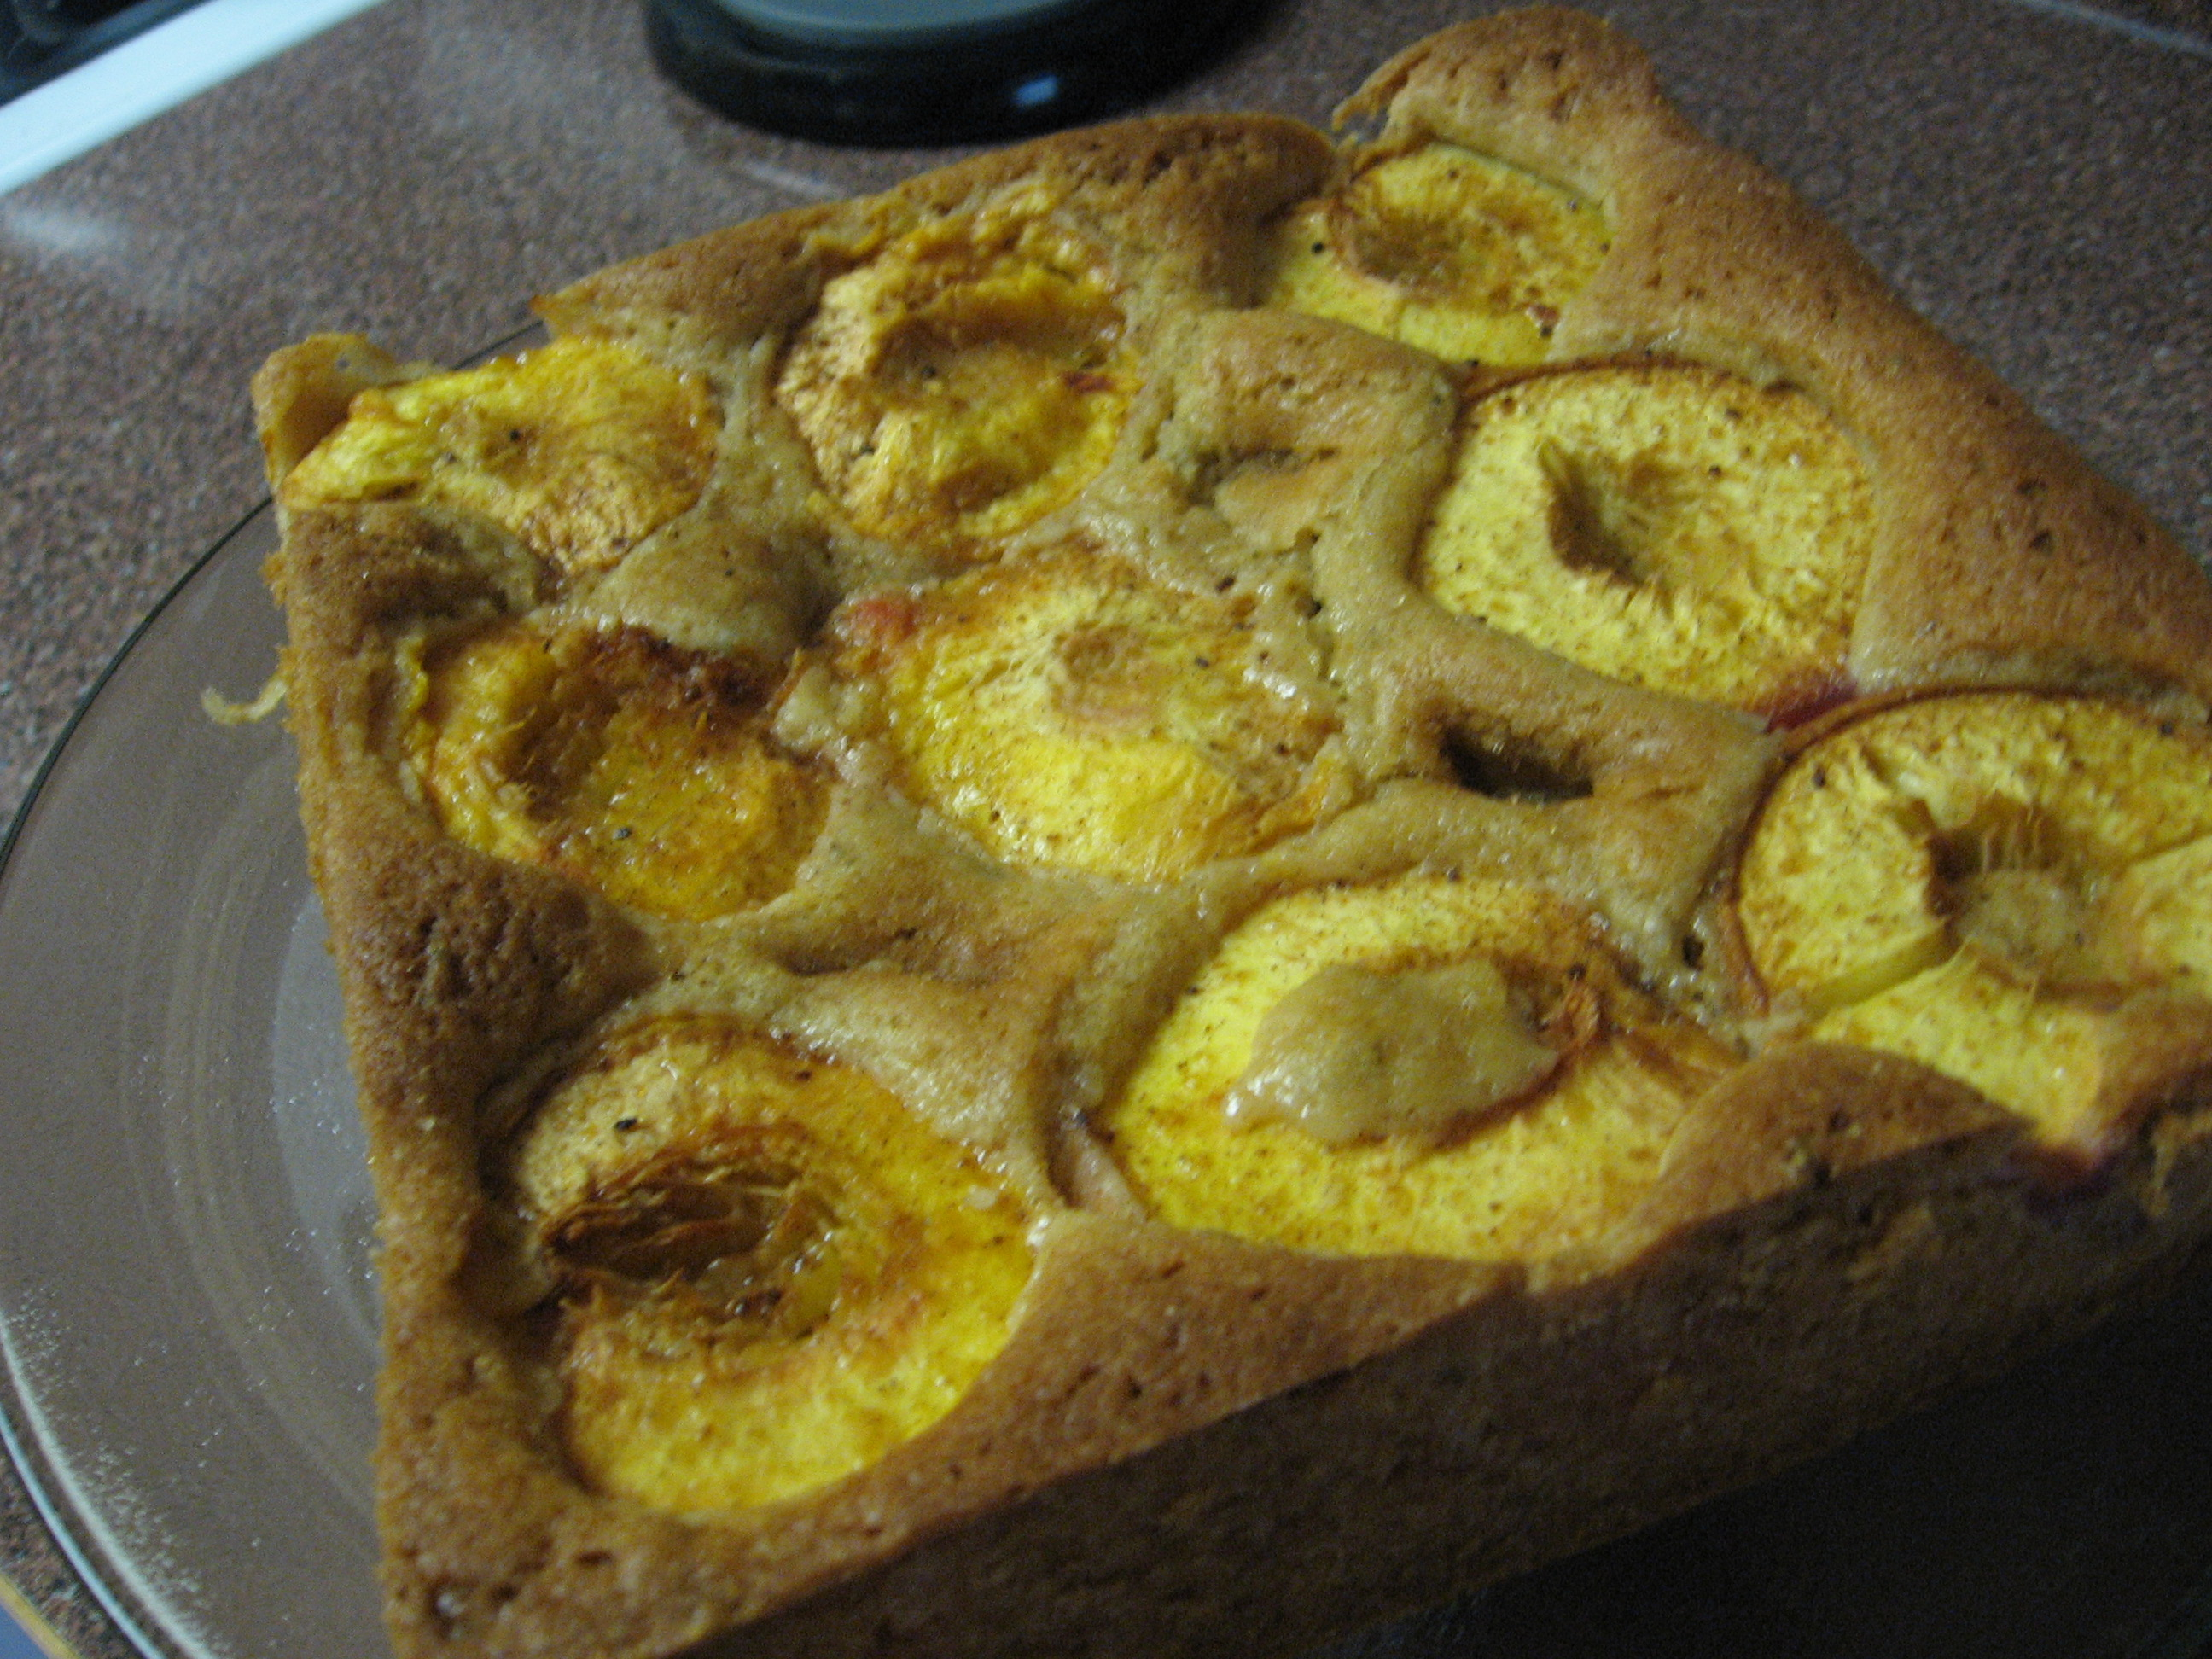 Peach cake: after